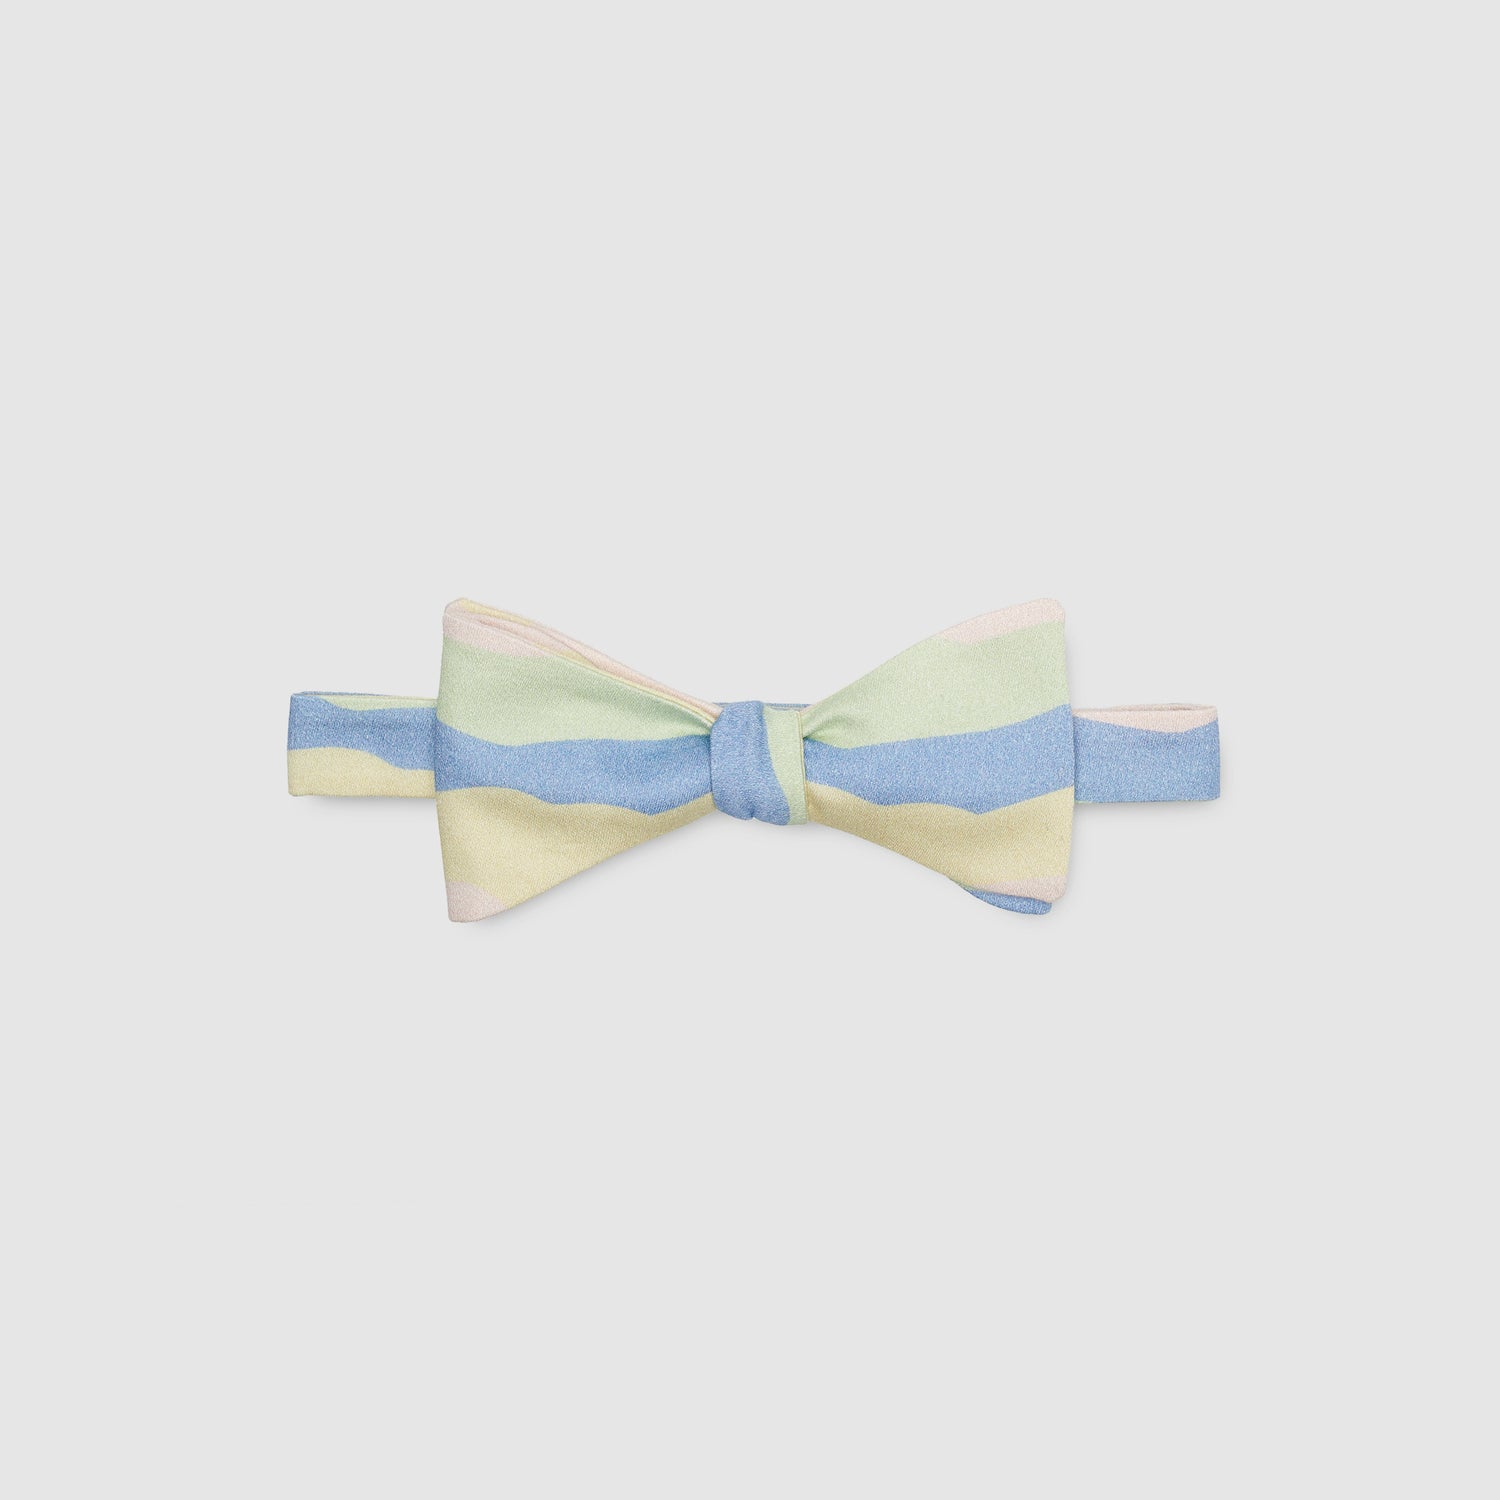 ODELA - the bow tie